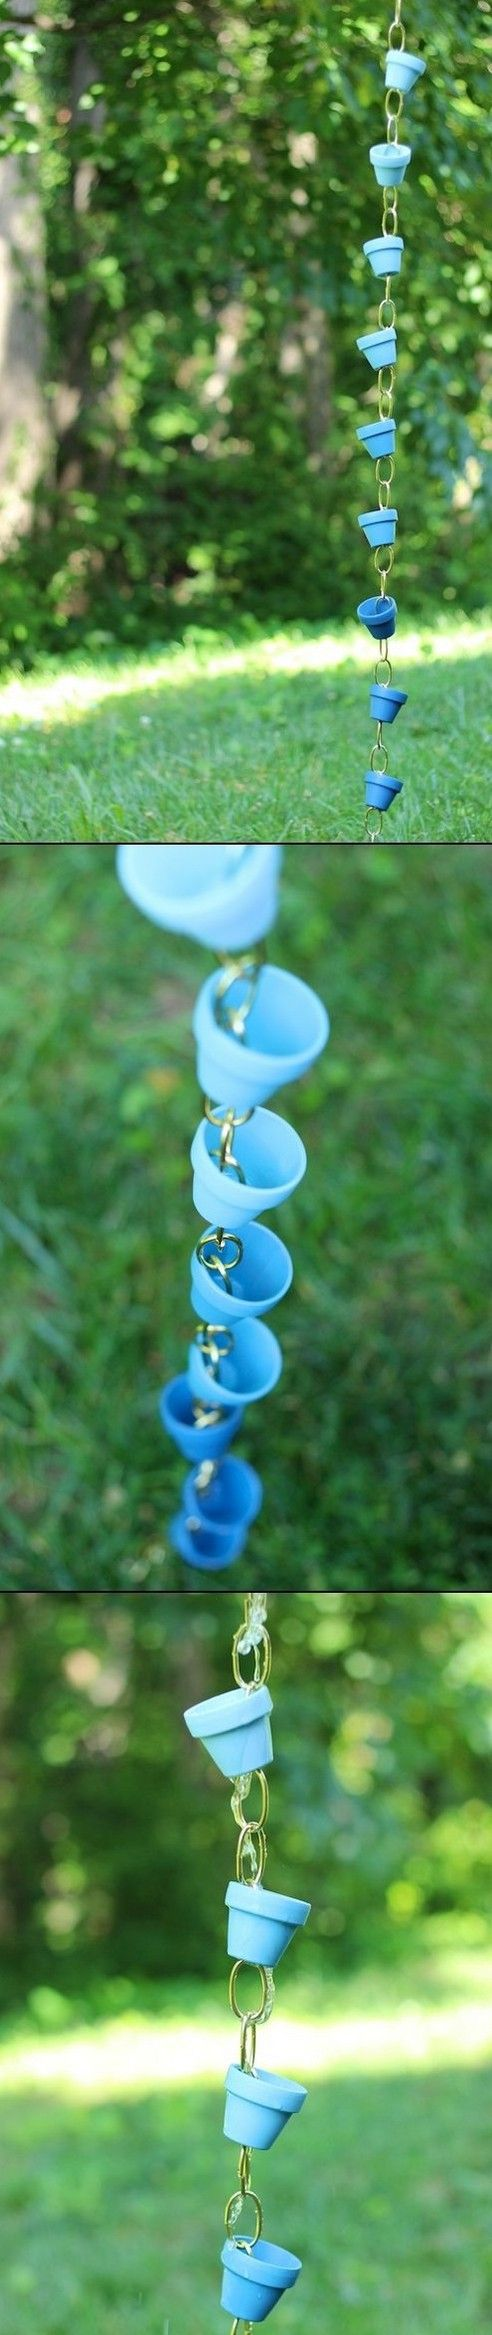 For gifts - paint them the recipient's favorite color.  DIY OMBRE COLOUR - SMALL POTs -  RAIN CHAIN